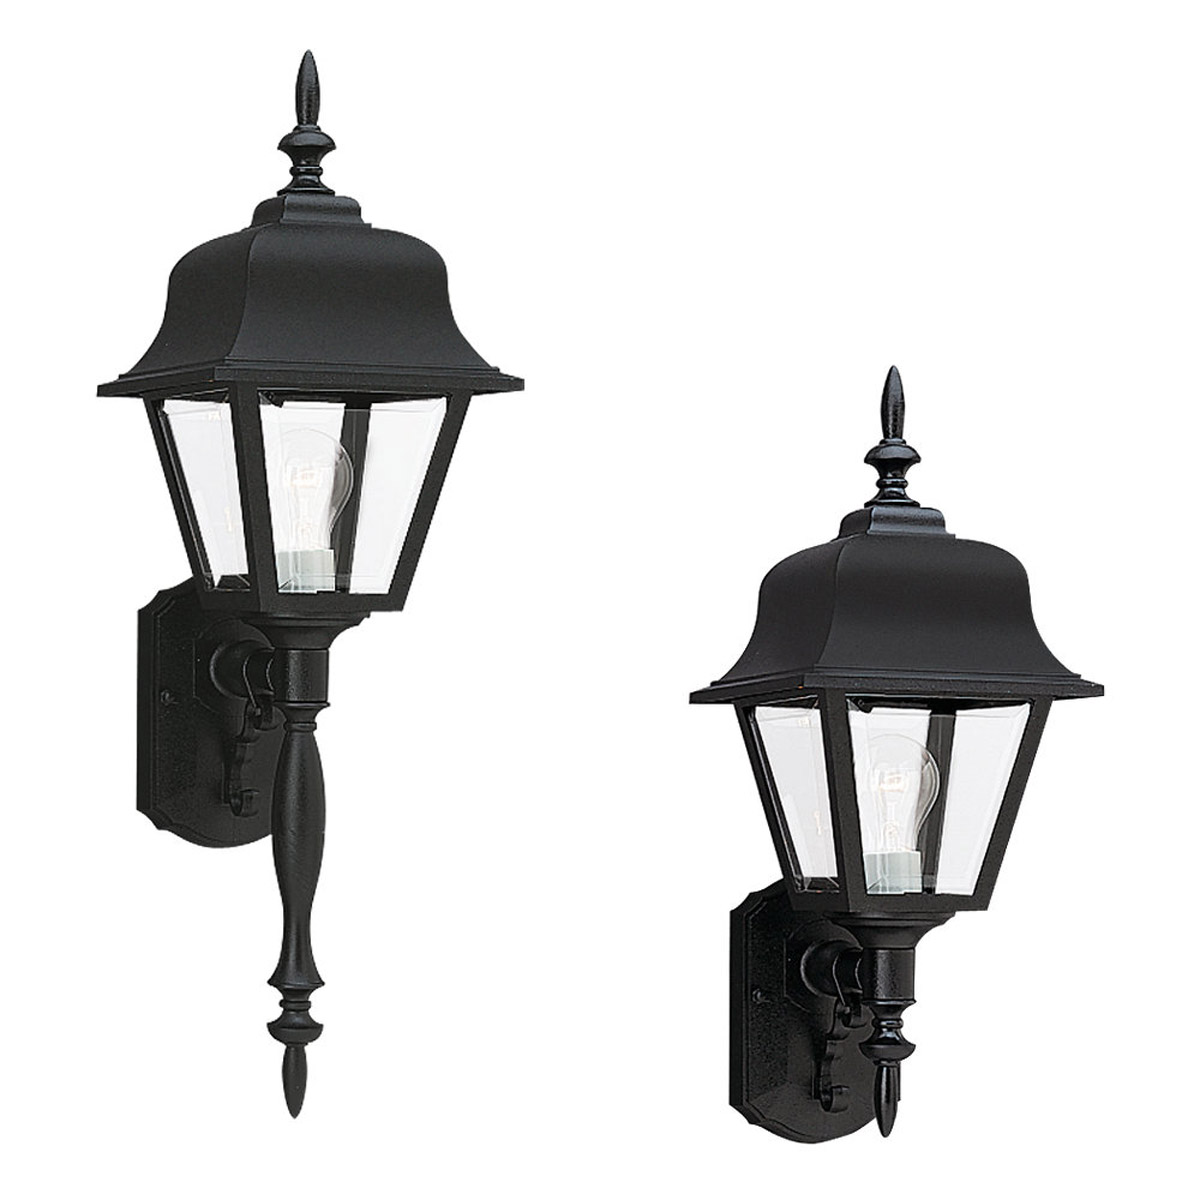 Sea Gull Lighting Polycarb Painted Lanterns 1 Light Outdoor Wall Lantern in Black 8765-12 photo